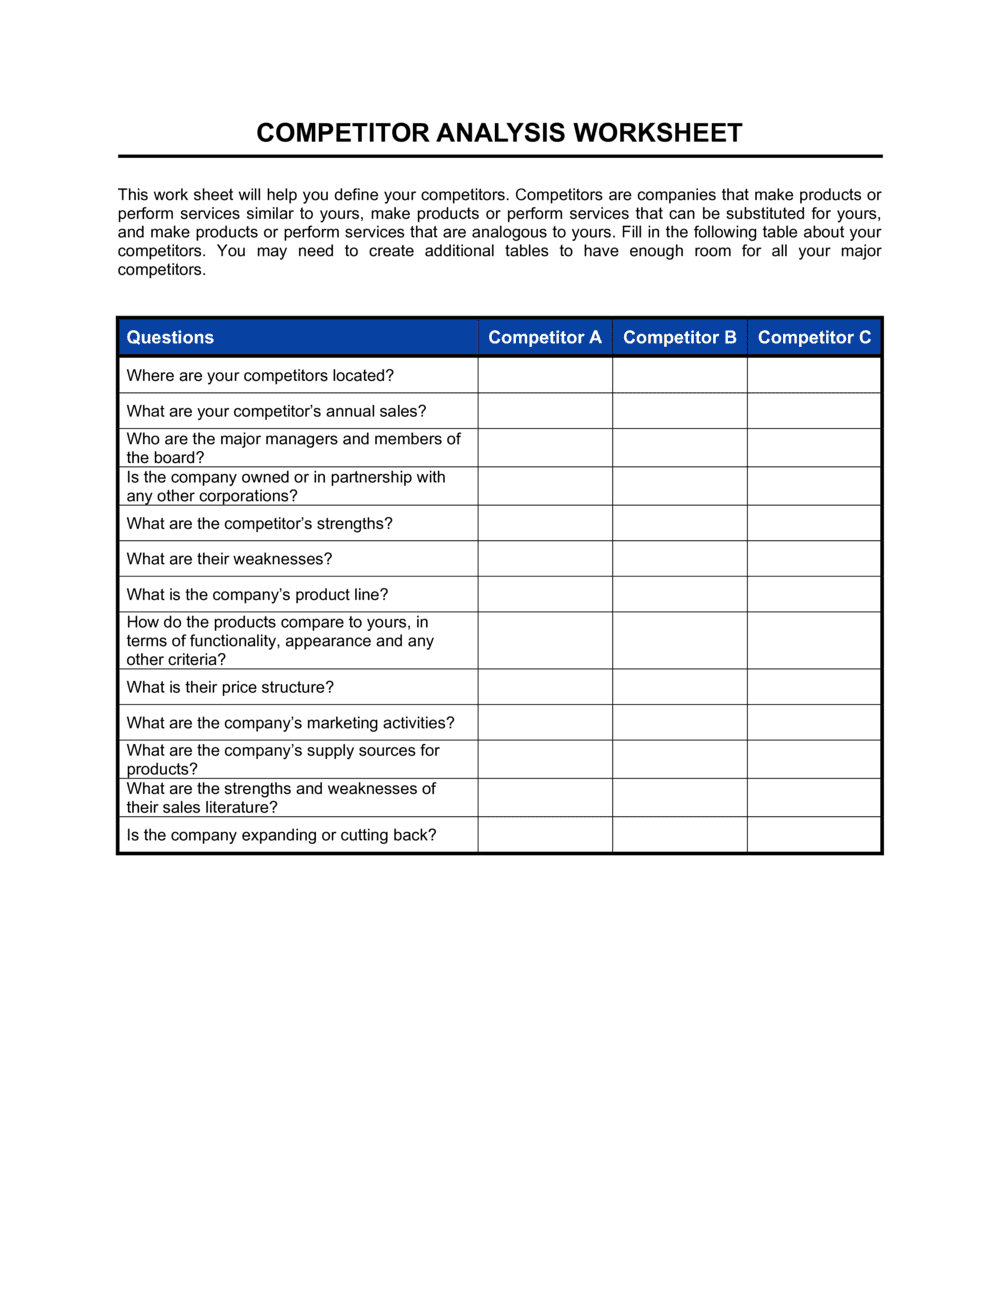 Business-in-a-Box's Worksheet Competitor Analysis Template